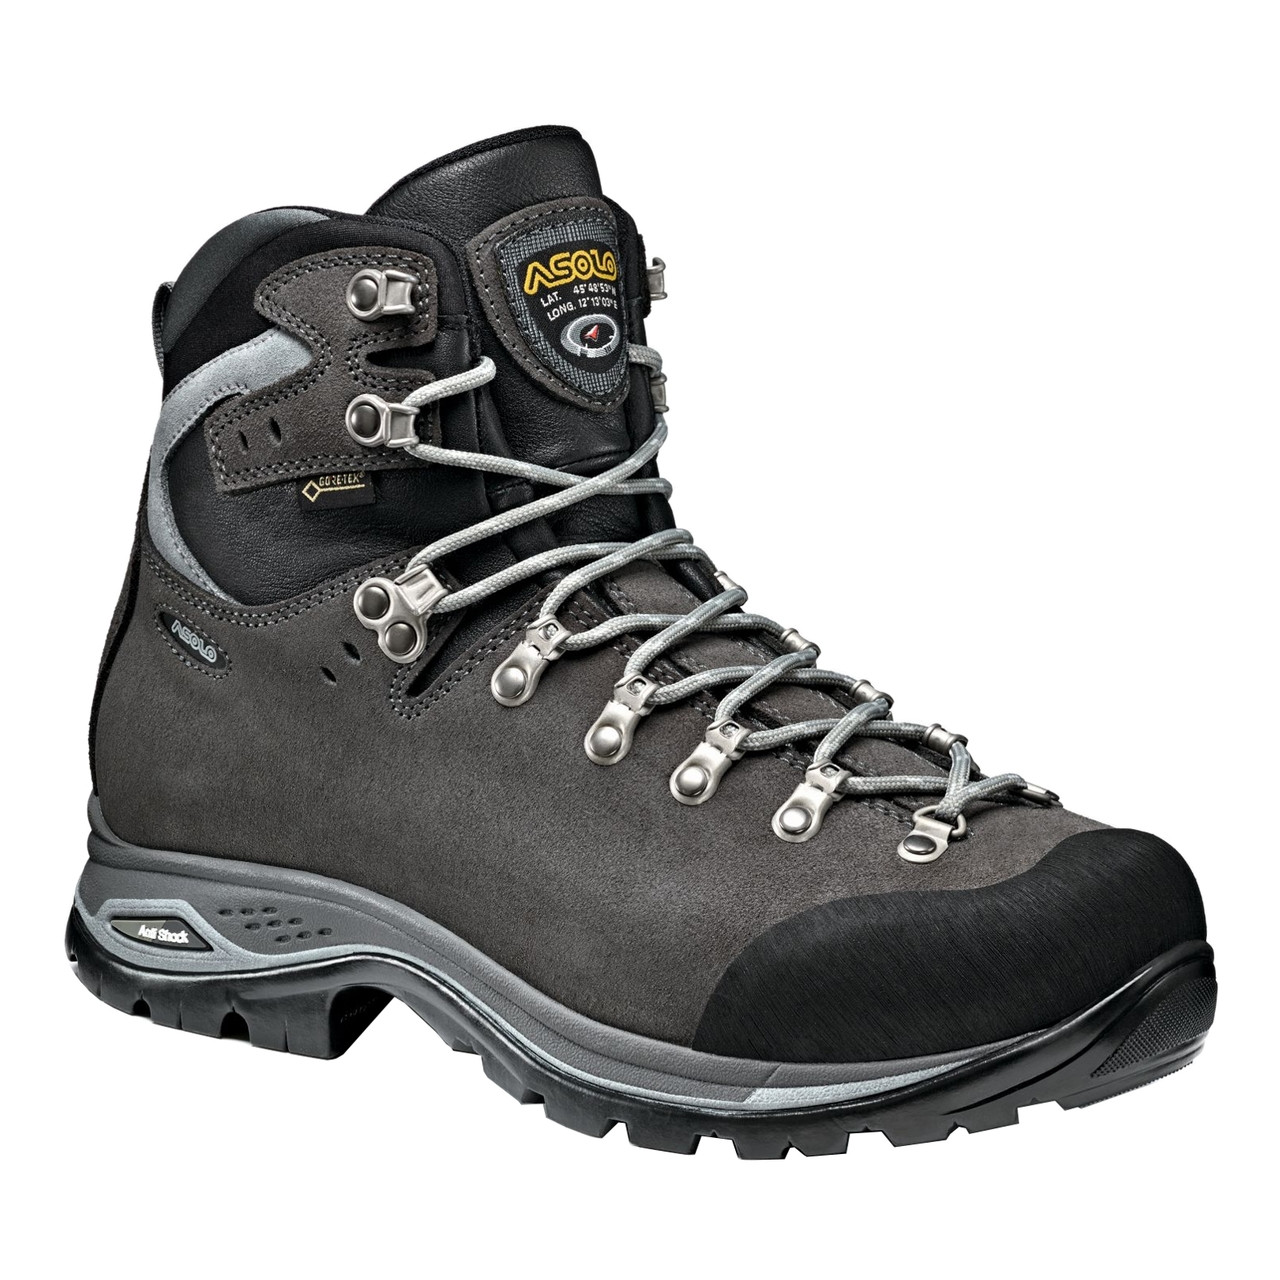 5fe6888d1cdba Asolo Greenwood Gv Hiking Boots - Men's